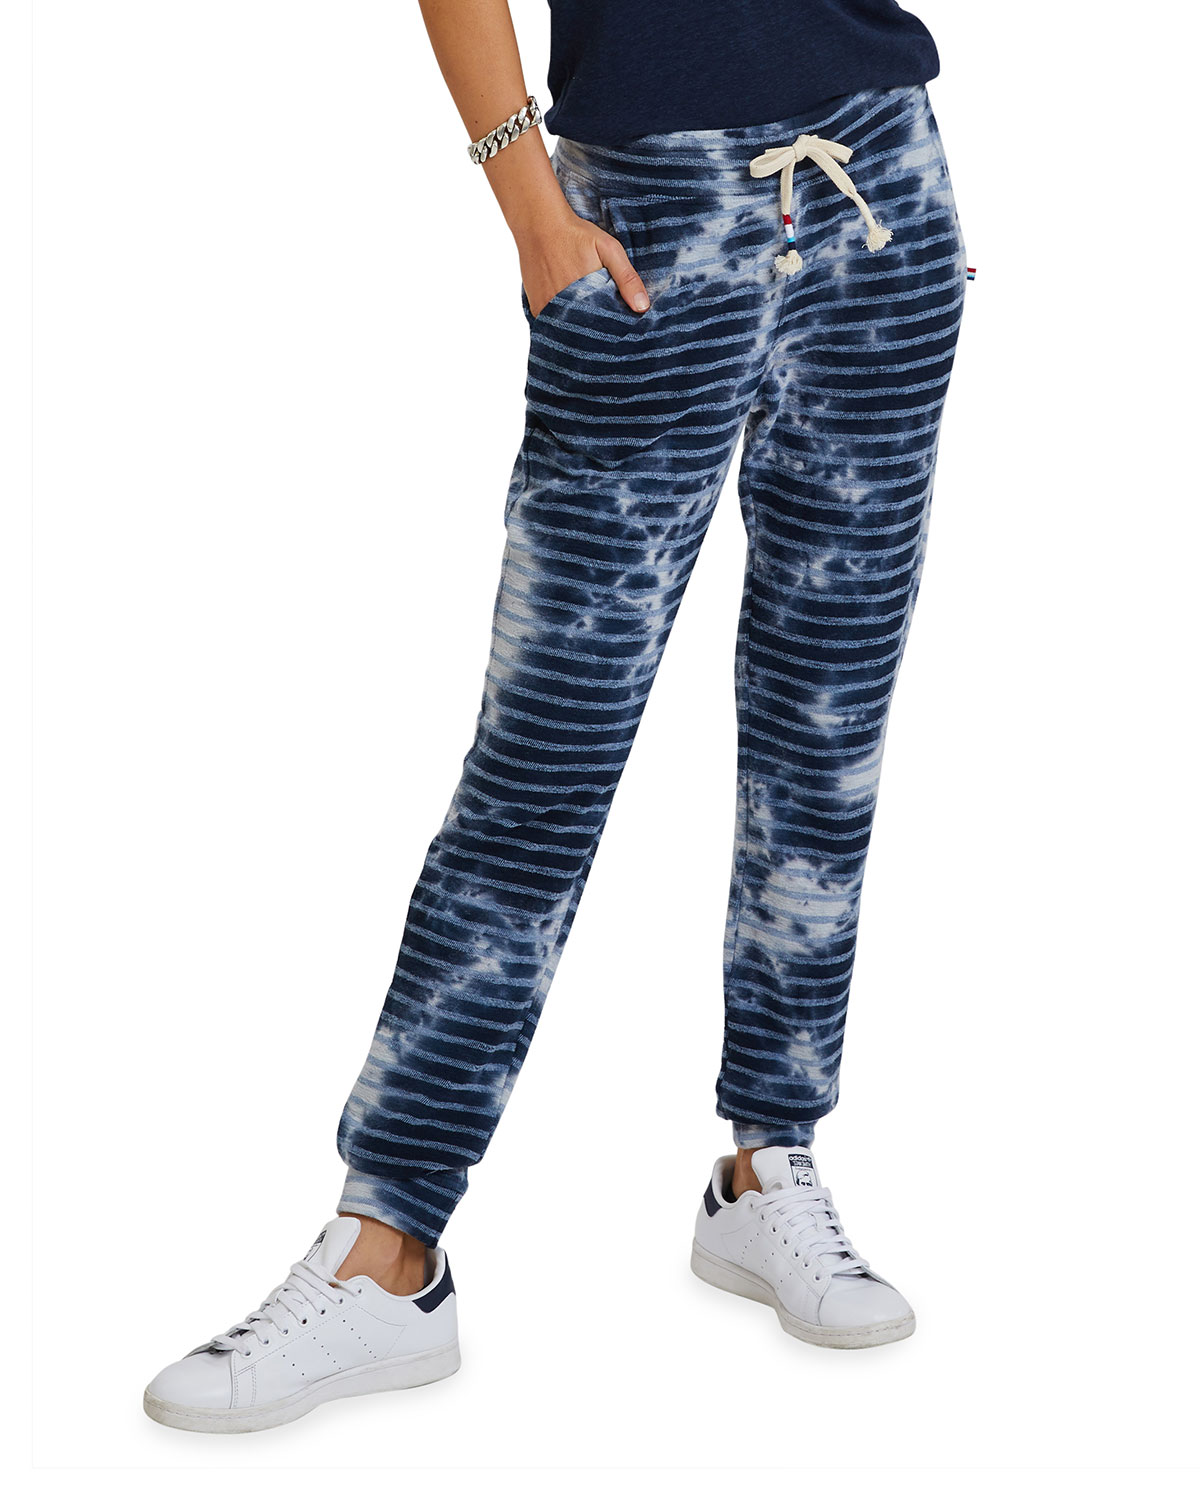 Catalina Cloud French Terry Jogger Pants